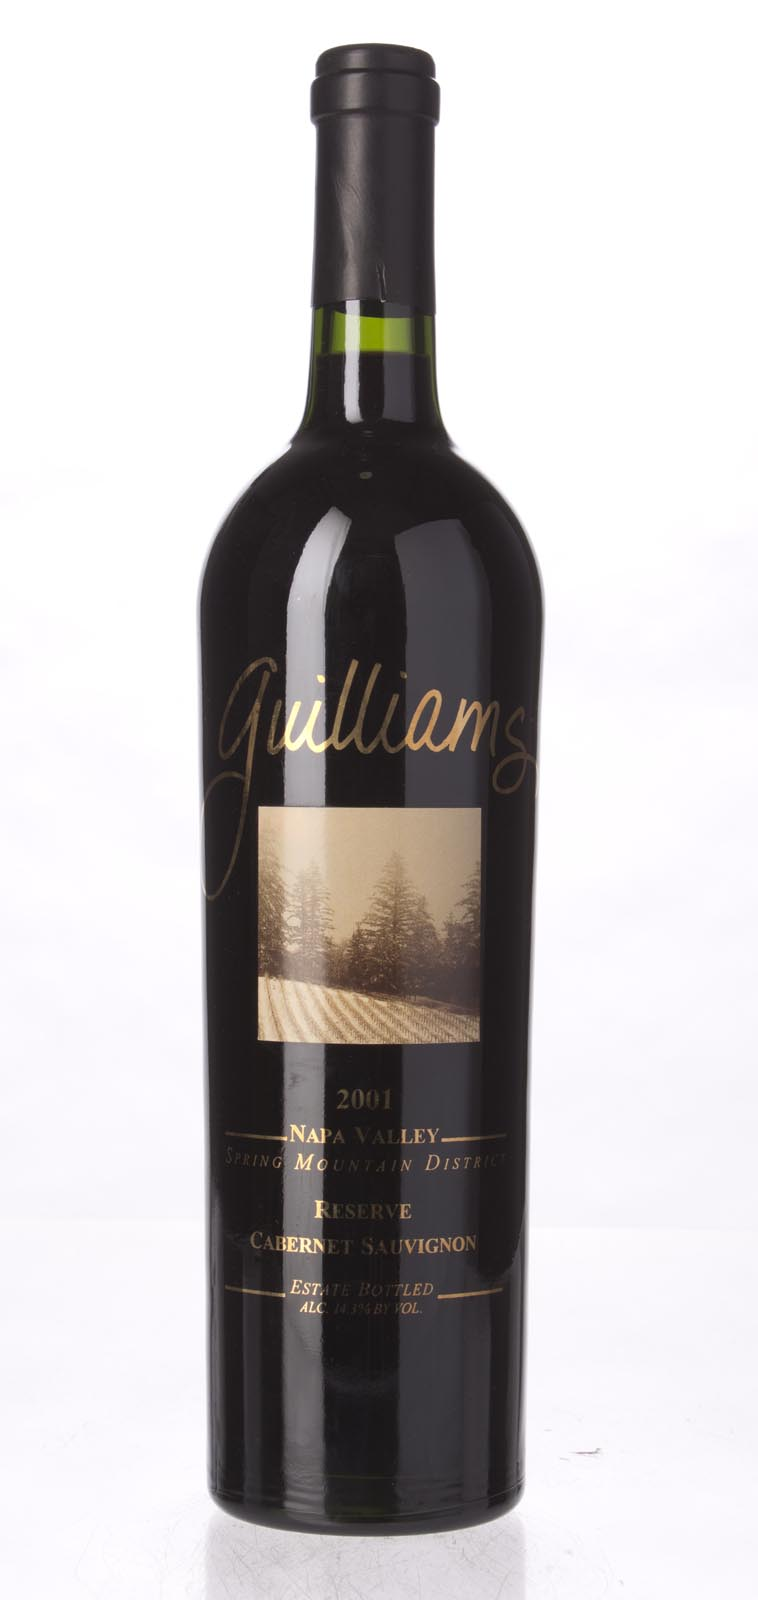 Guilliams Cabernet Sauvignon Reserve 2001, 750mL () from The BPW - Merchants of rare and fine wines.